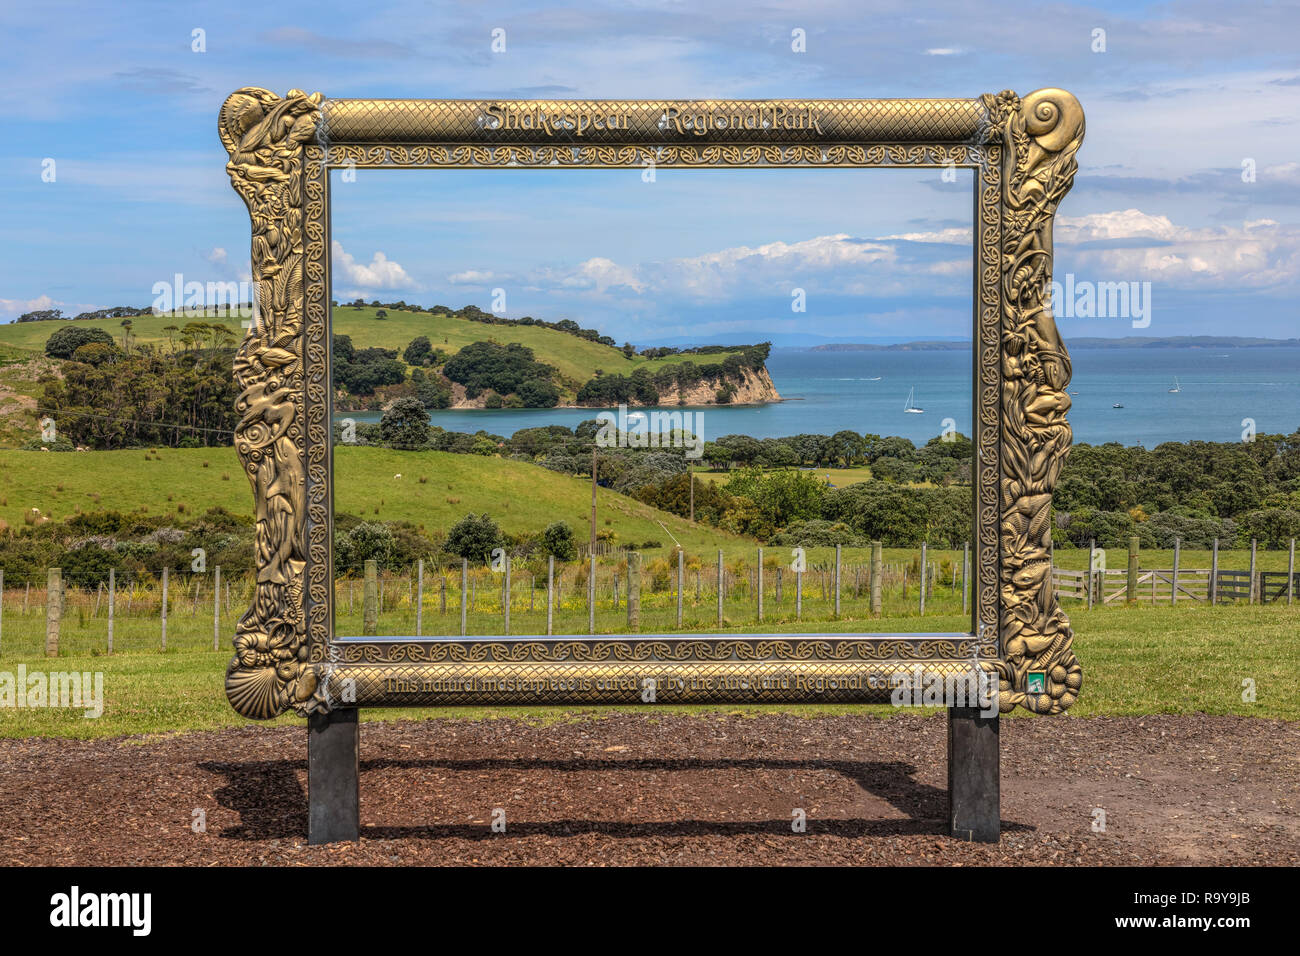 Shakespear Regional Park, Auckland, North Island, New Zealand - Stock Image